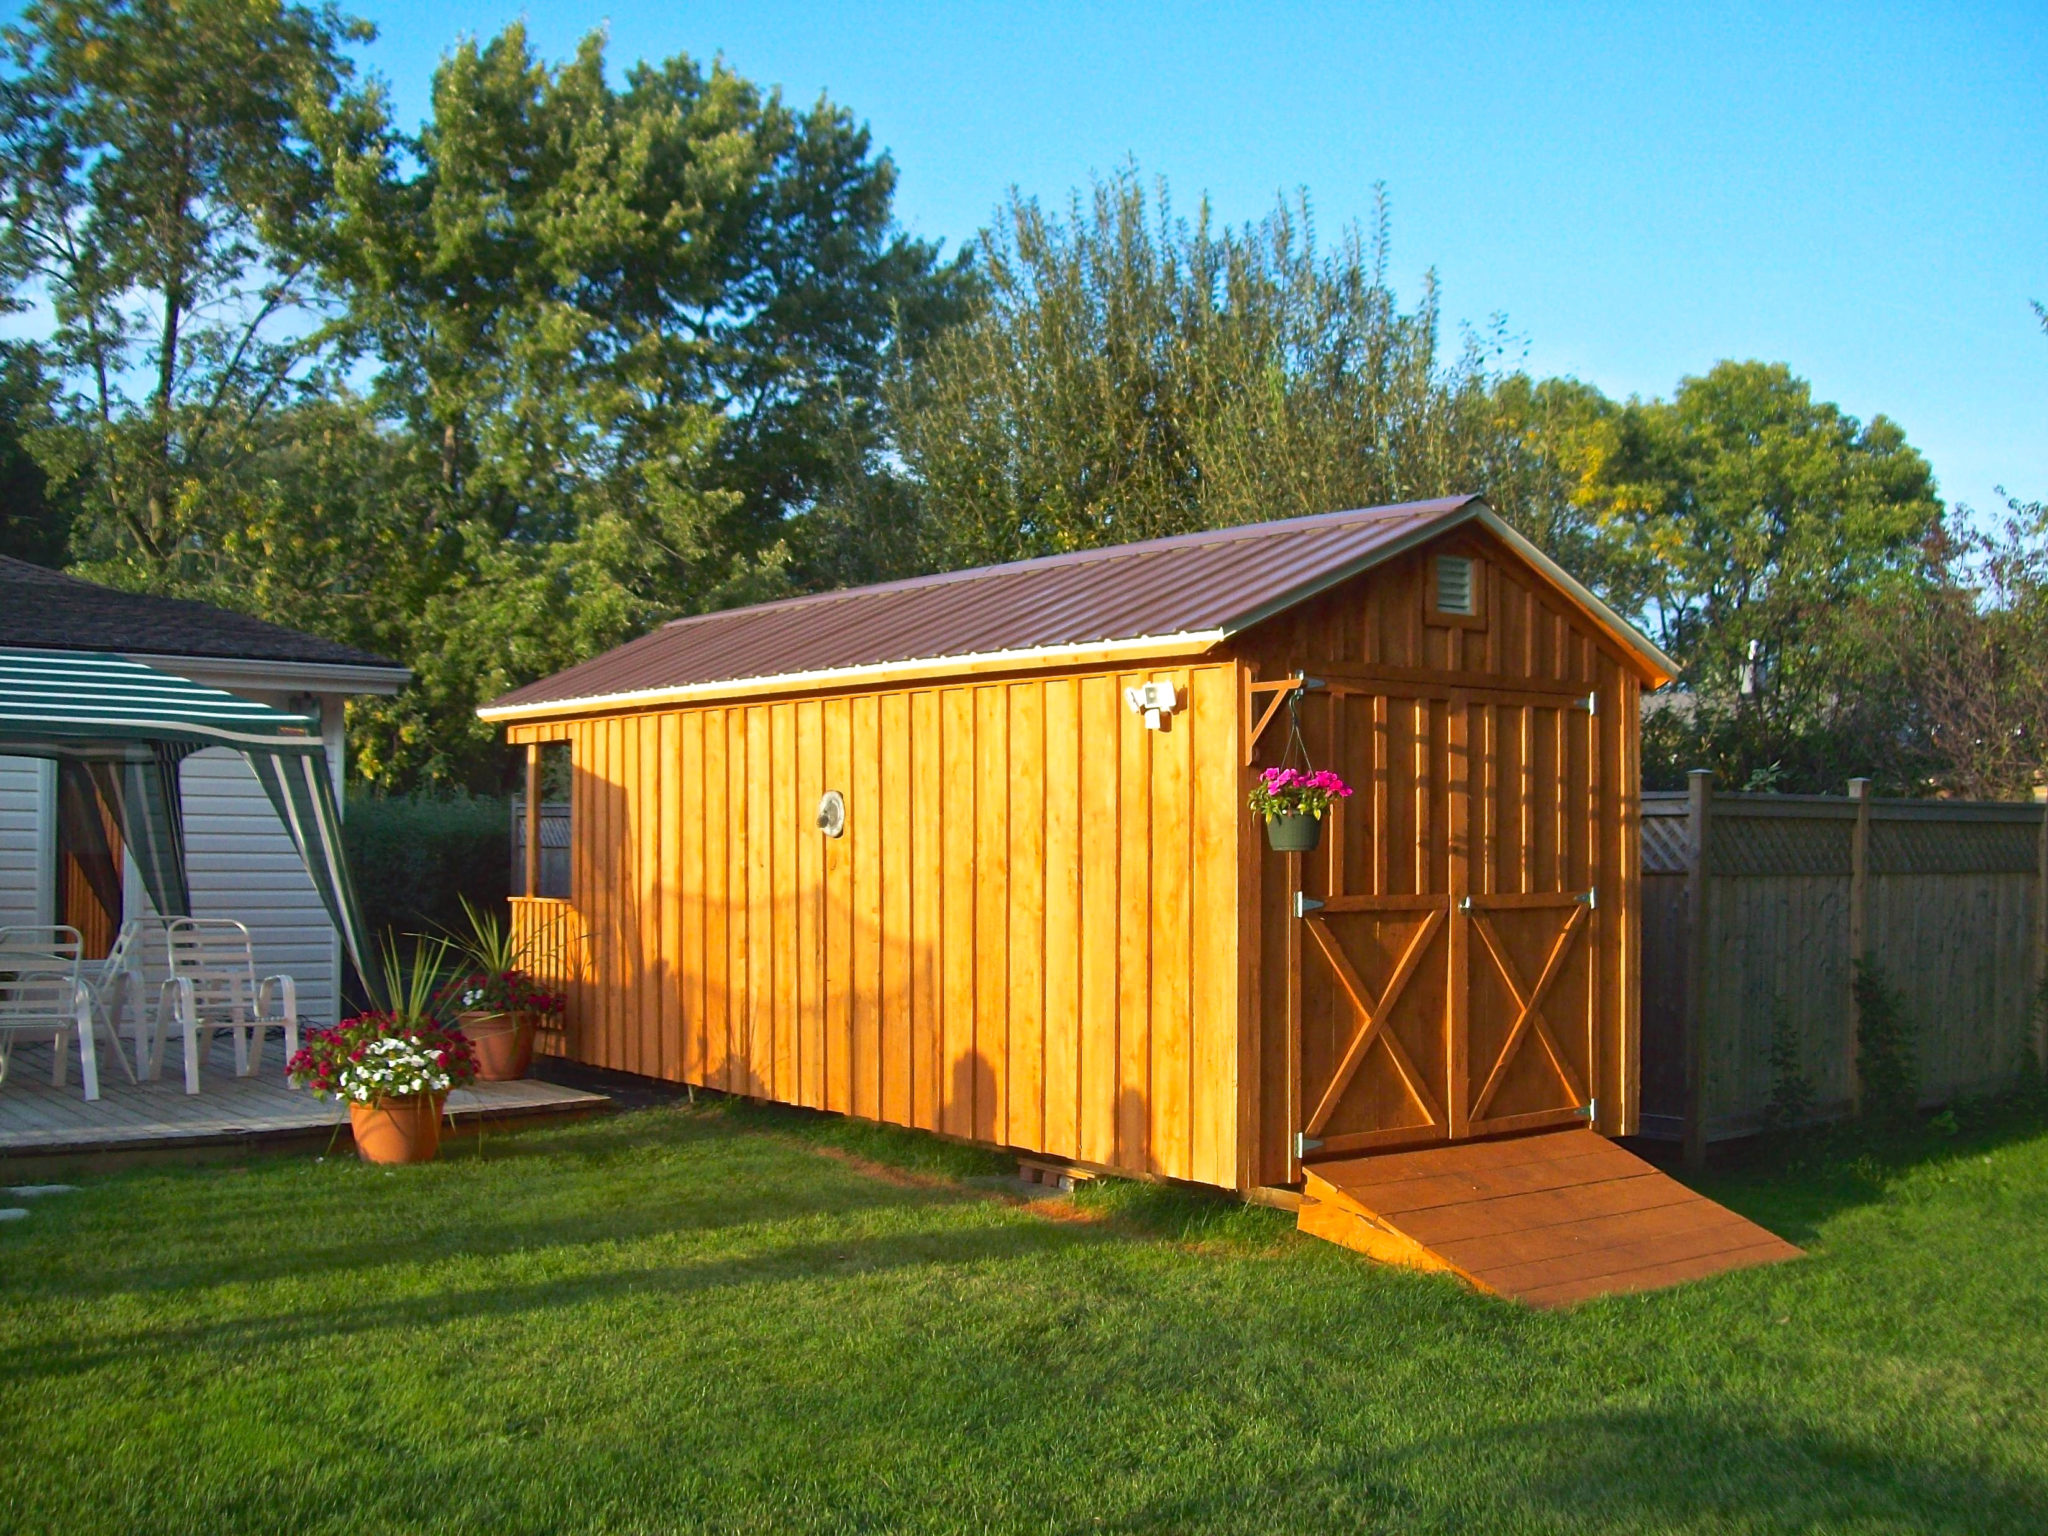 retreats and yard pin plans garden sheds nappanee now shed home backyard club porches back